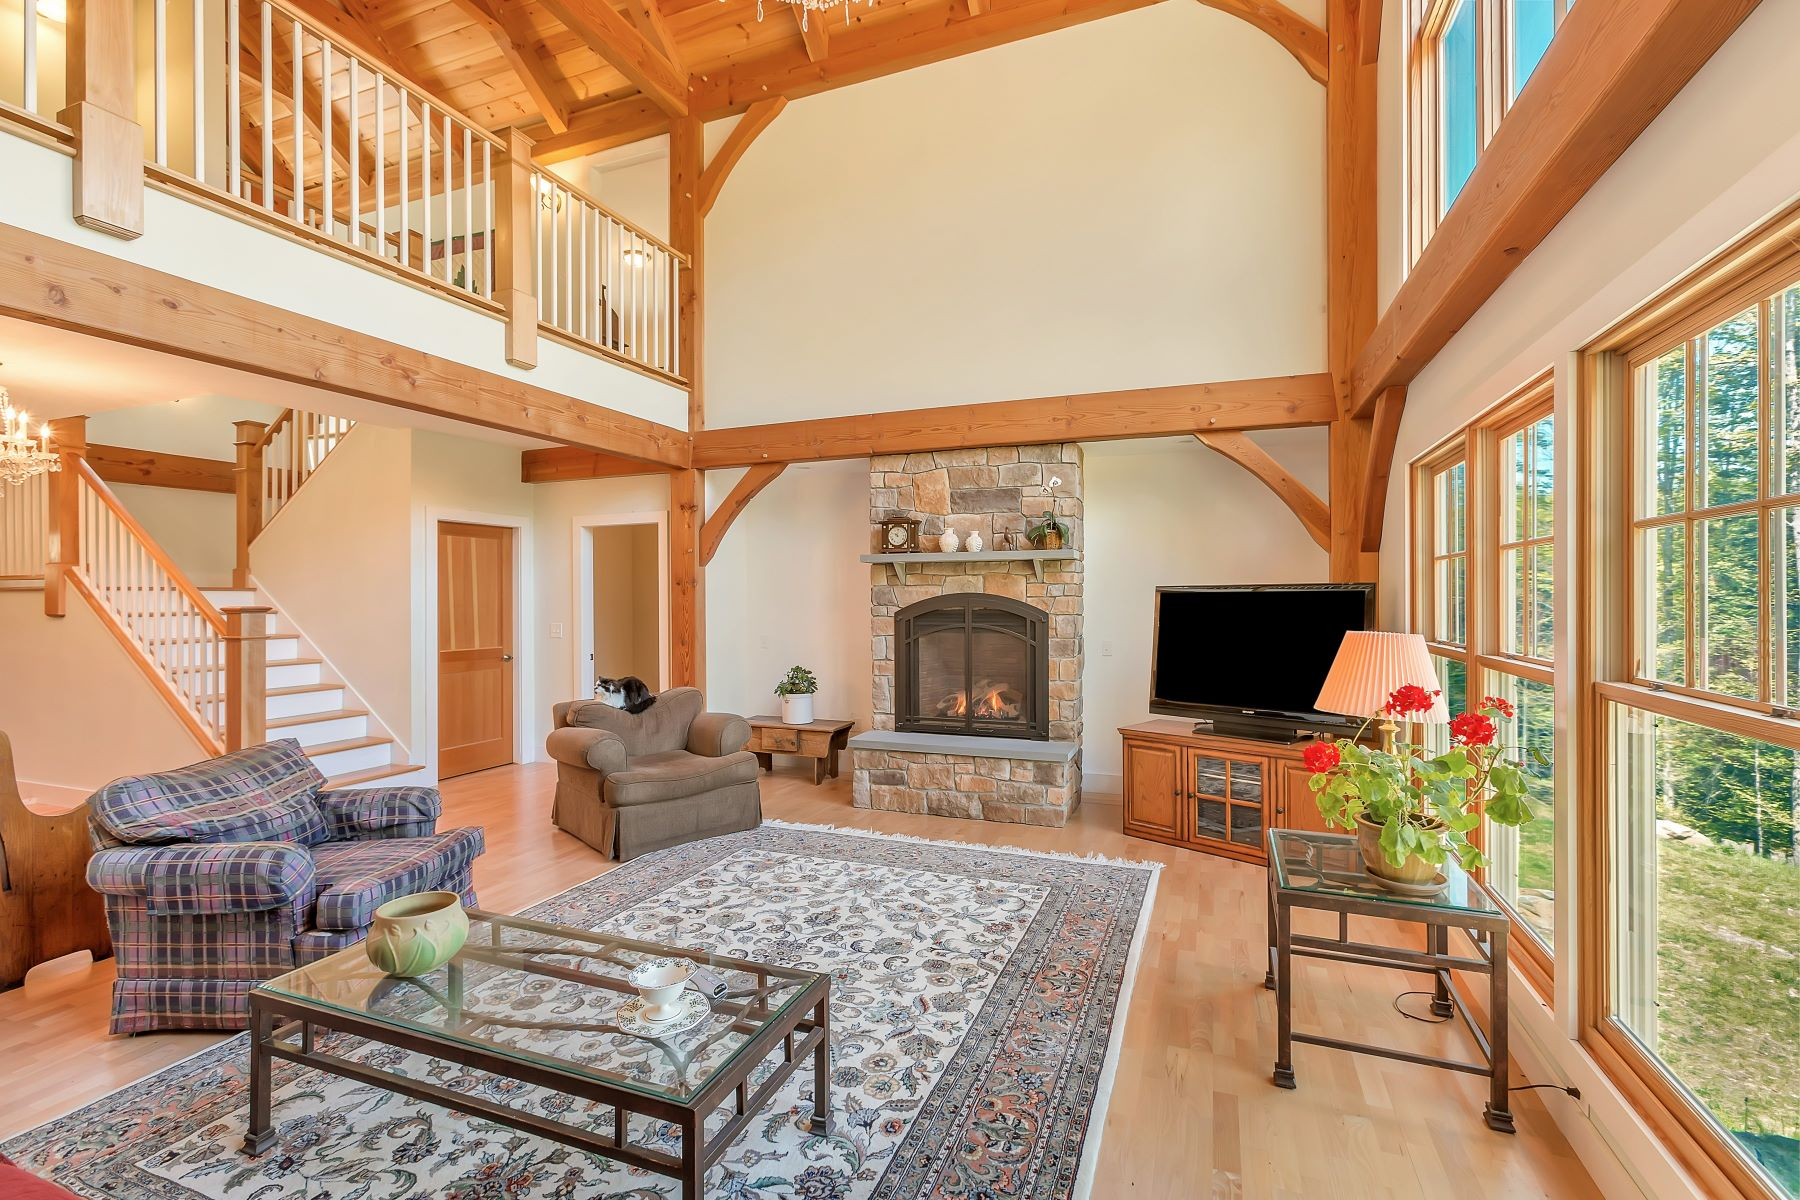 Single Family Home for Sale at THETFORD POST AND BEAM 1675 Sawnee Bean Rd, Thetford, Vermont, 05075 United States